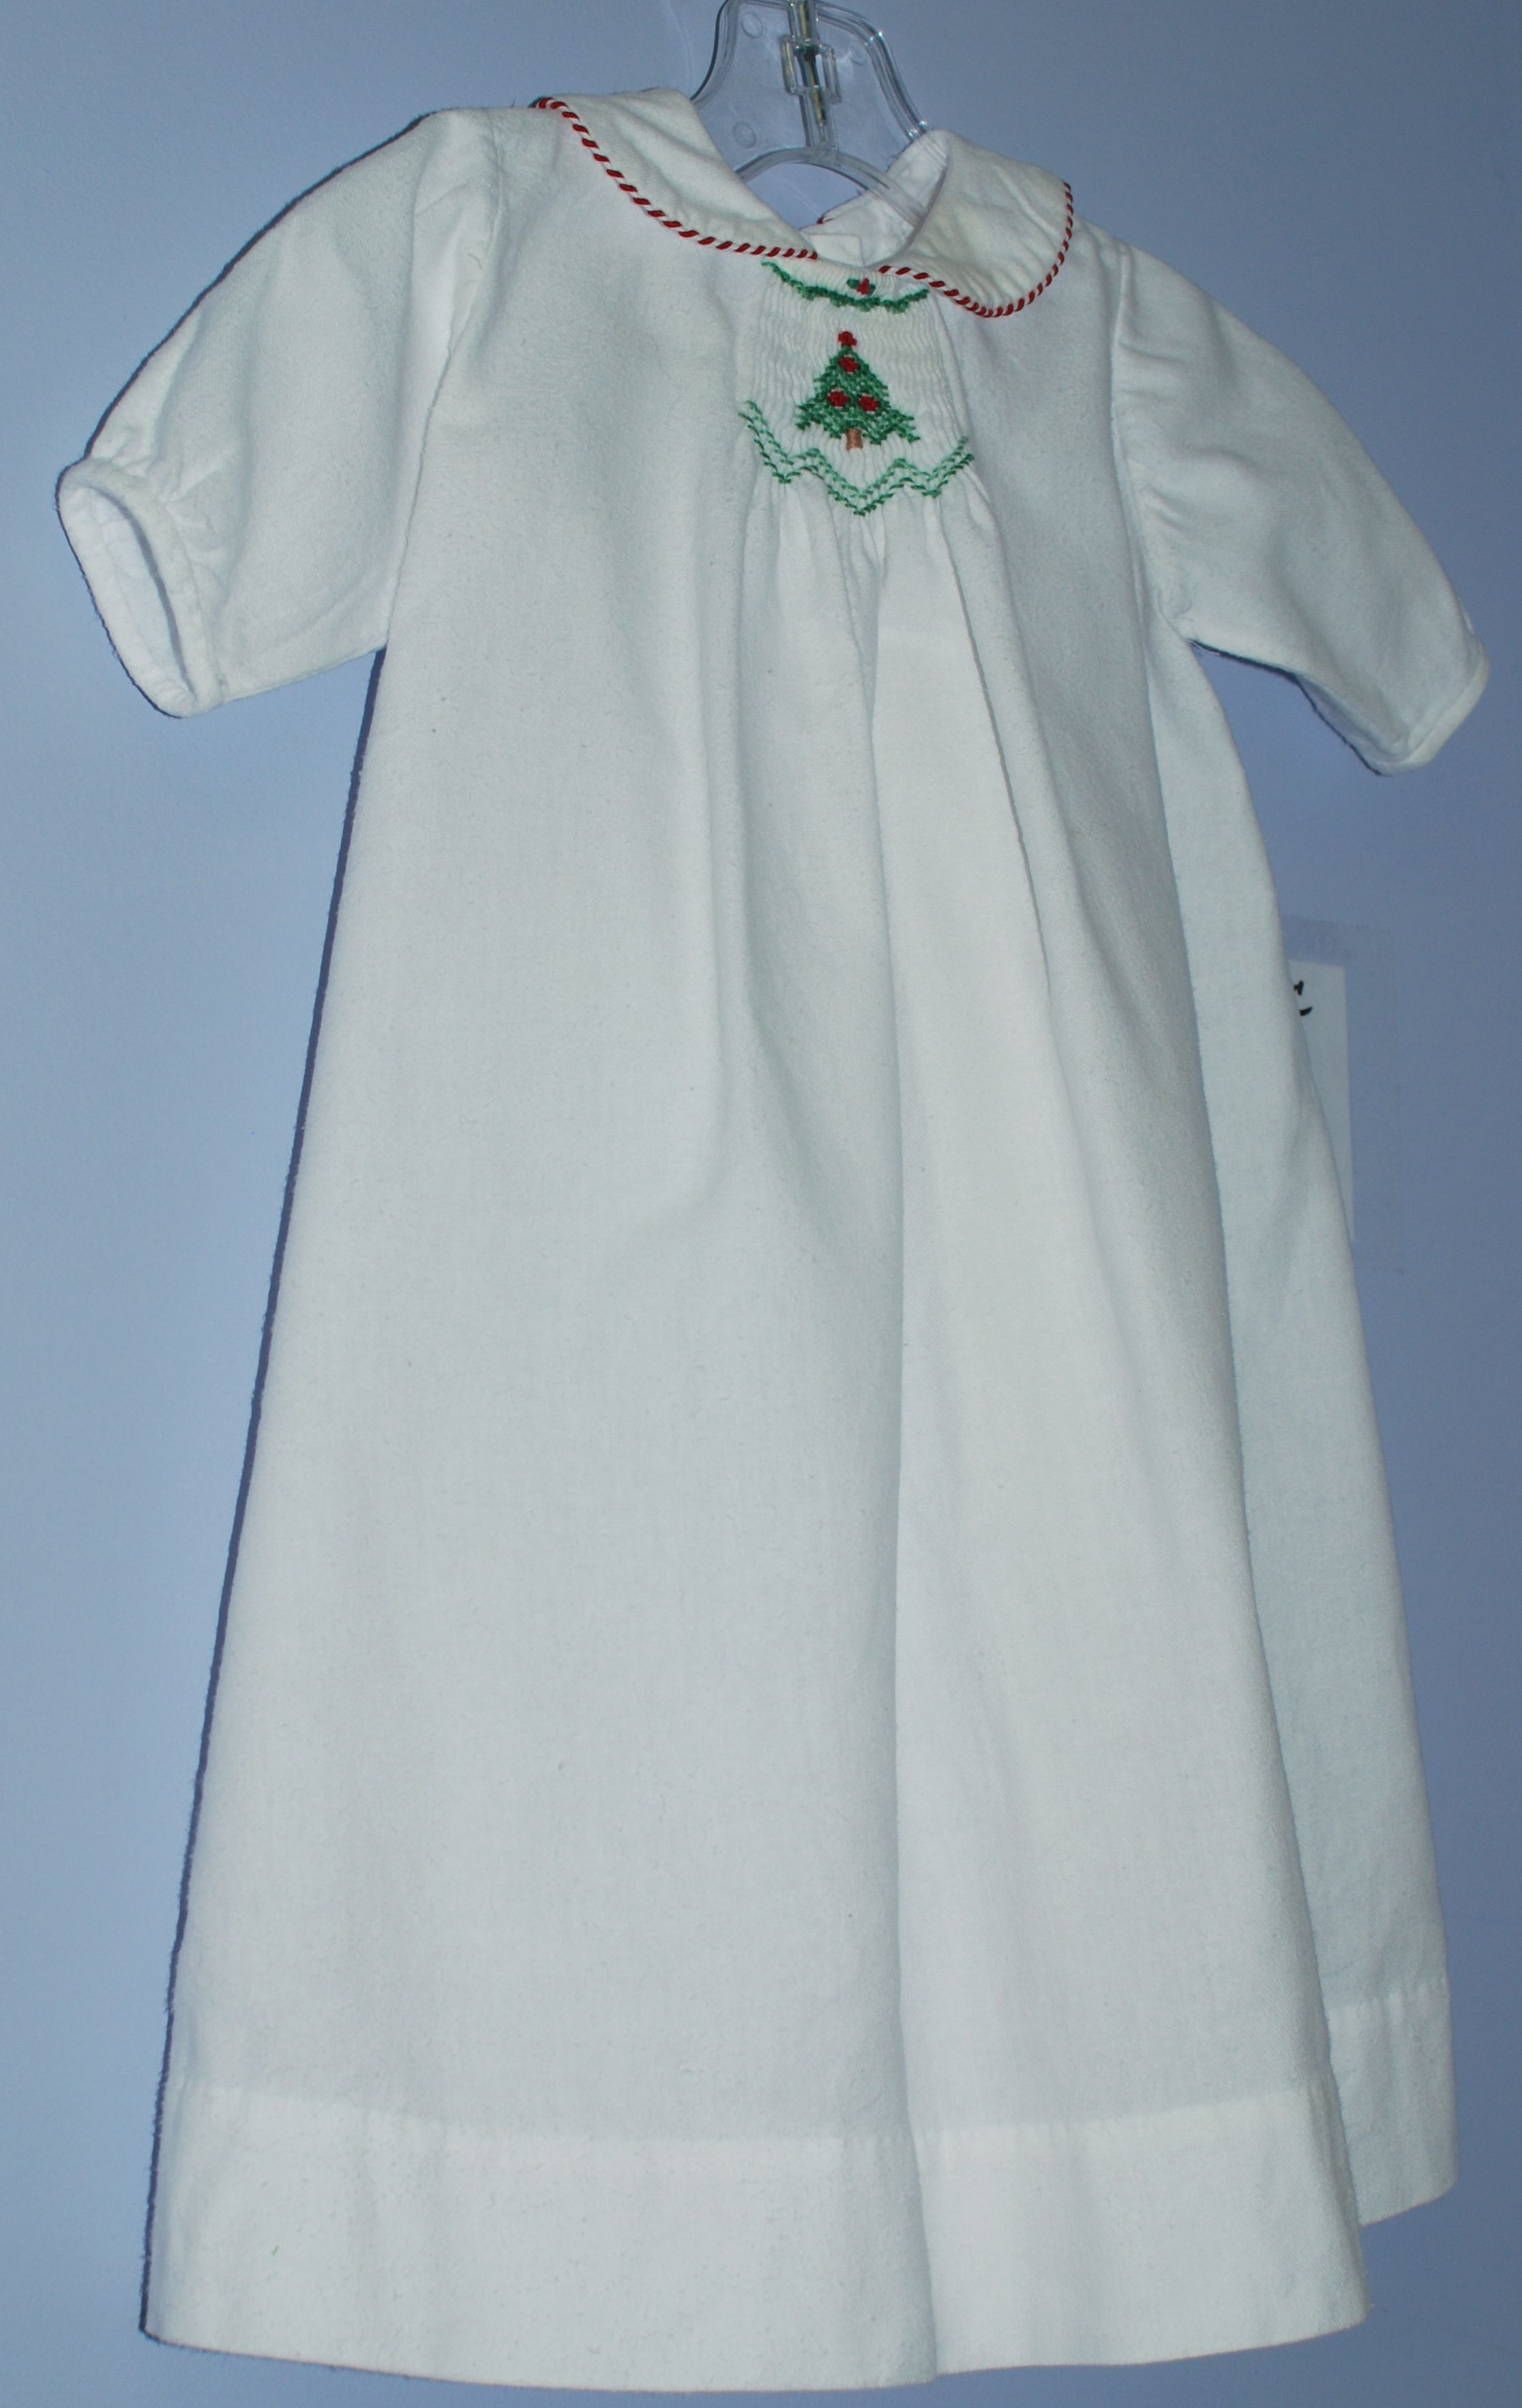 Center smocked Christmas tree on day gown. Childrens